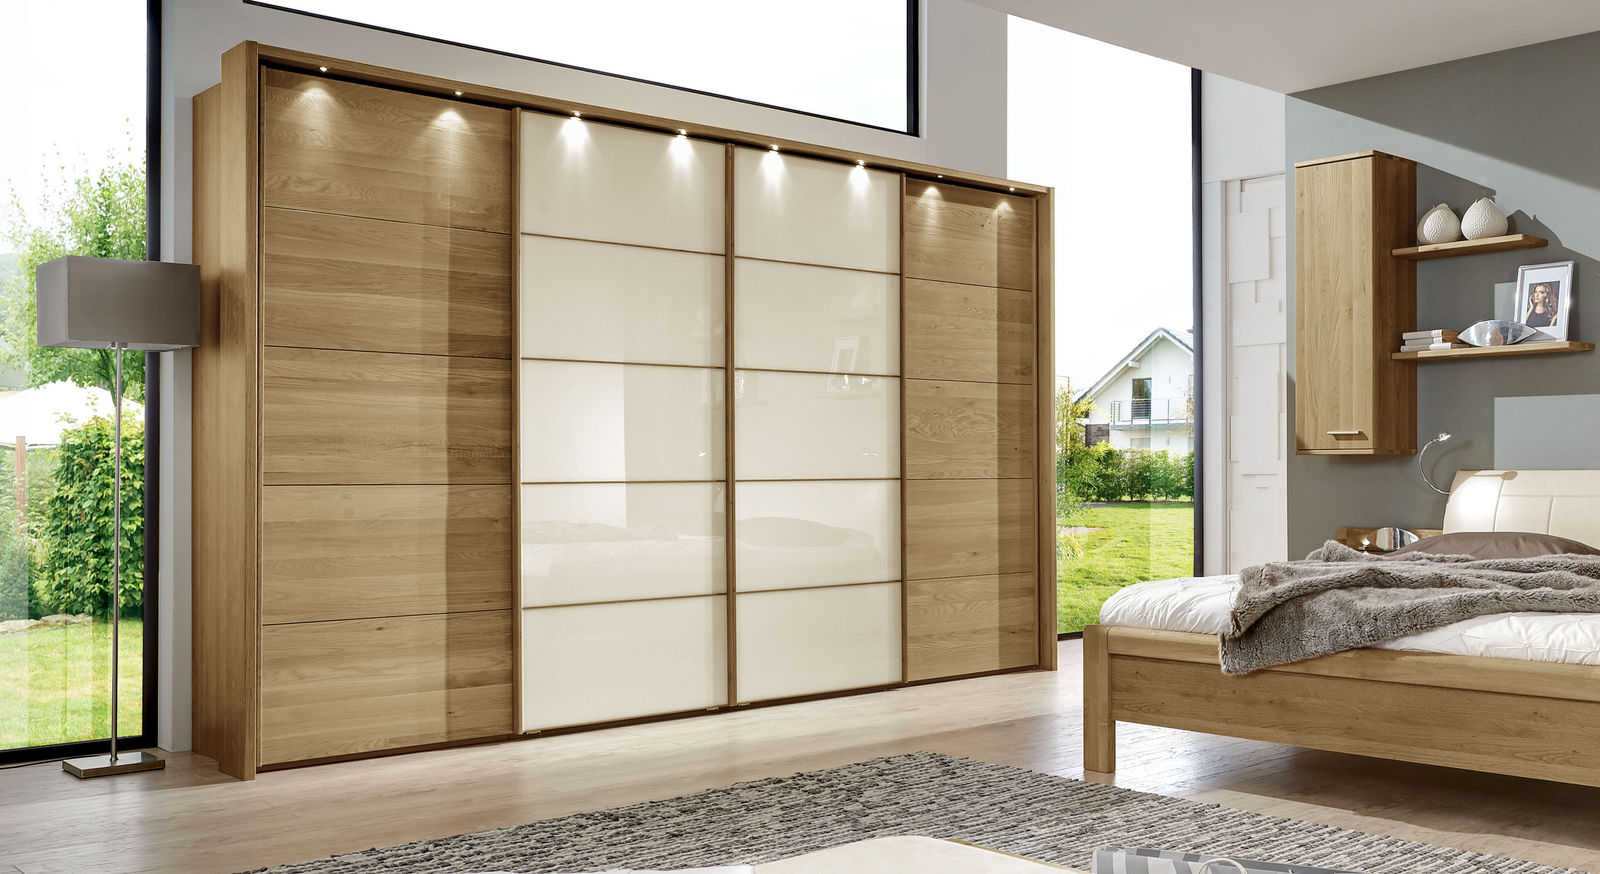 schwebet ren kleiderschrank in eiche dekor mit glasfront praia. Black Bedroom Furniture Sets. Home Design Ideas